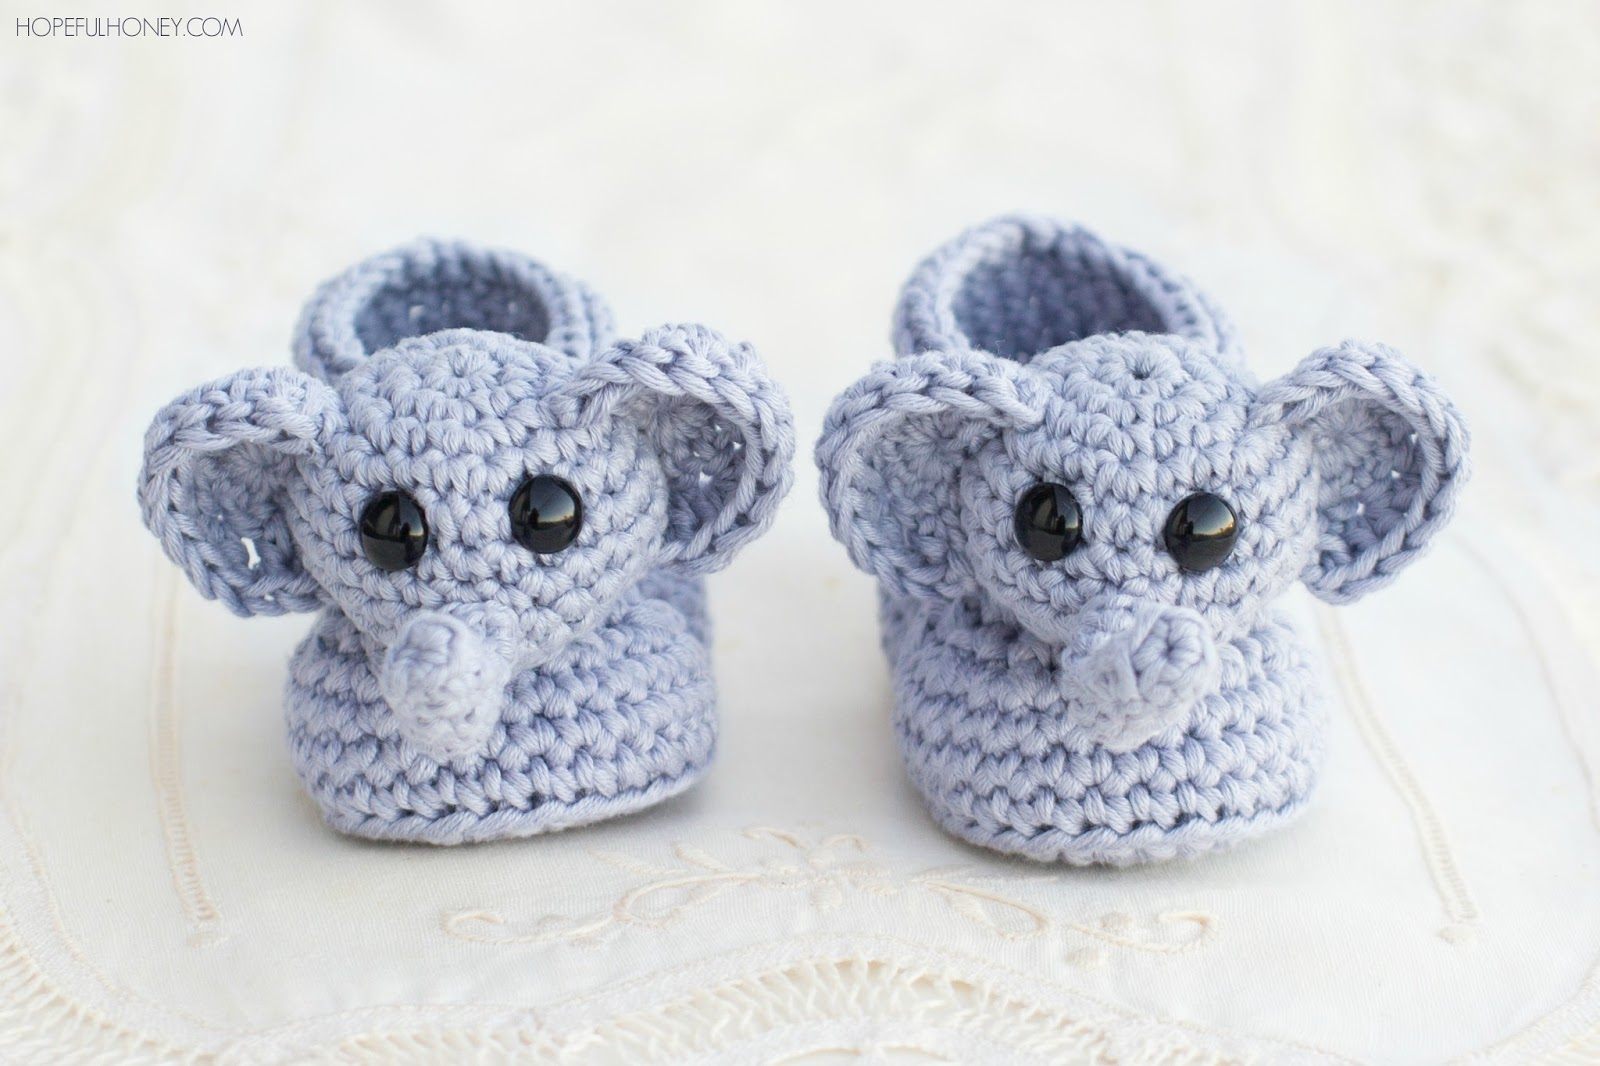 Crochet Baby Booties Pattern With Pictures : Hopeful Honey Craft, Crochet, Create: Ellie The Elephant ...